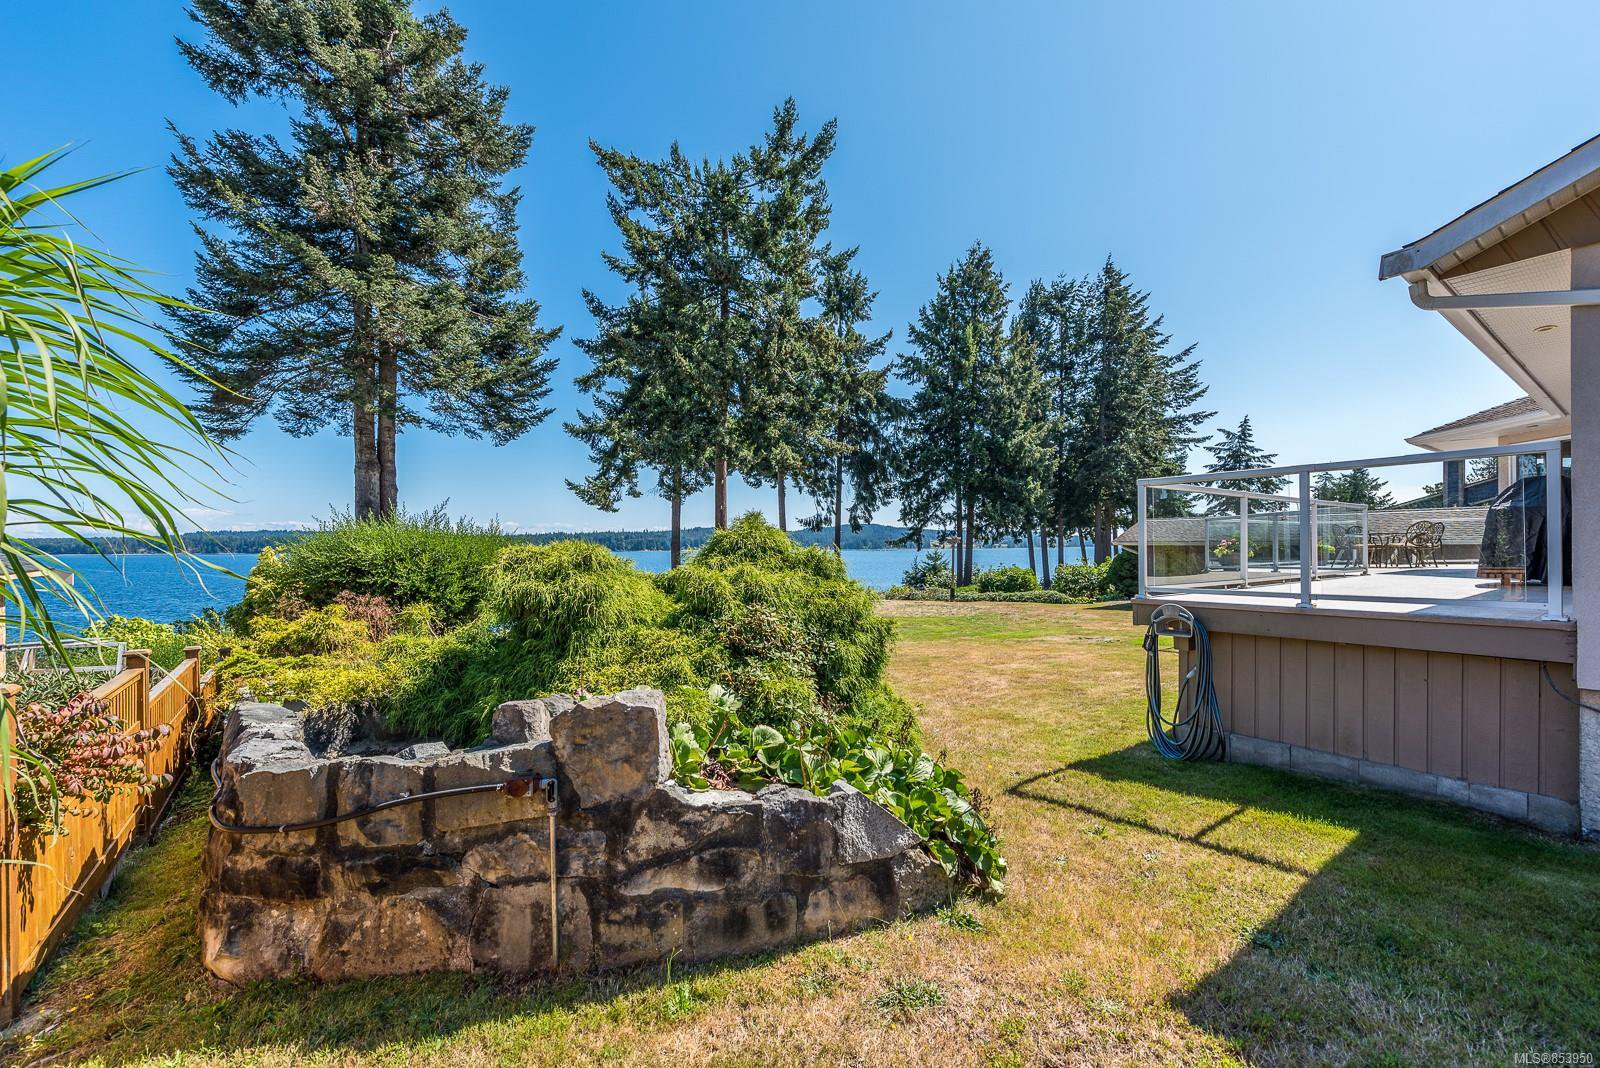 Photo 33: Photos: 5880 GARVIN Rd in : CV Union Bay/Fanny Bay House for sale (Comox Valley)  : MLS®# 853950